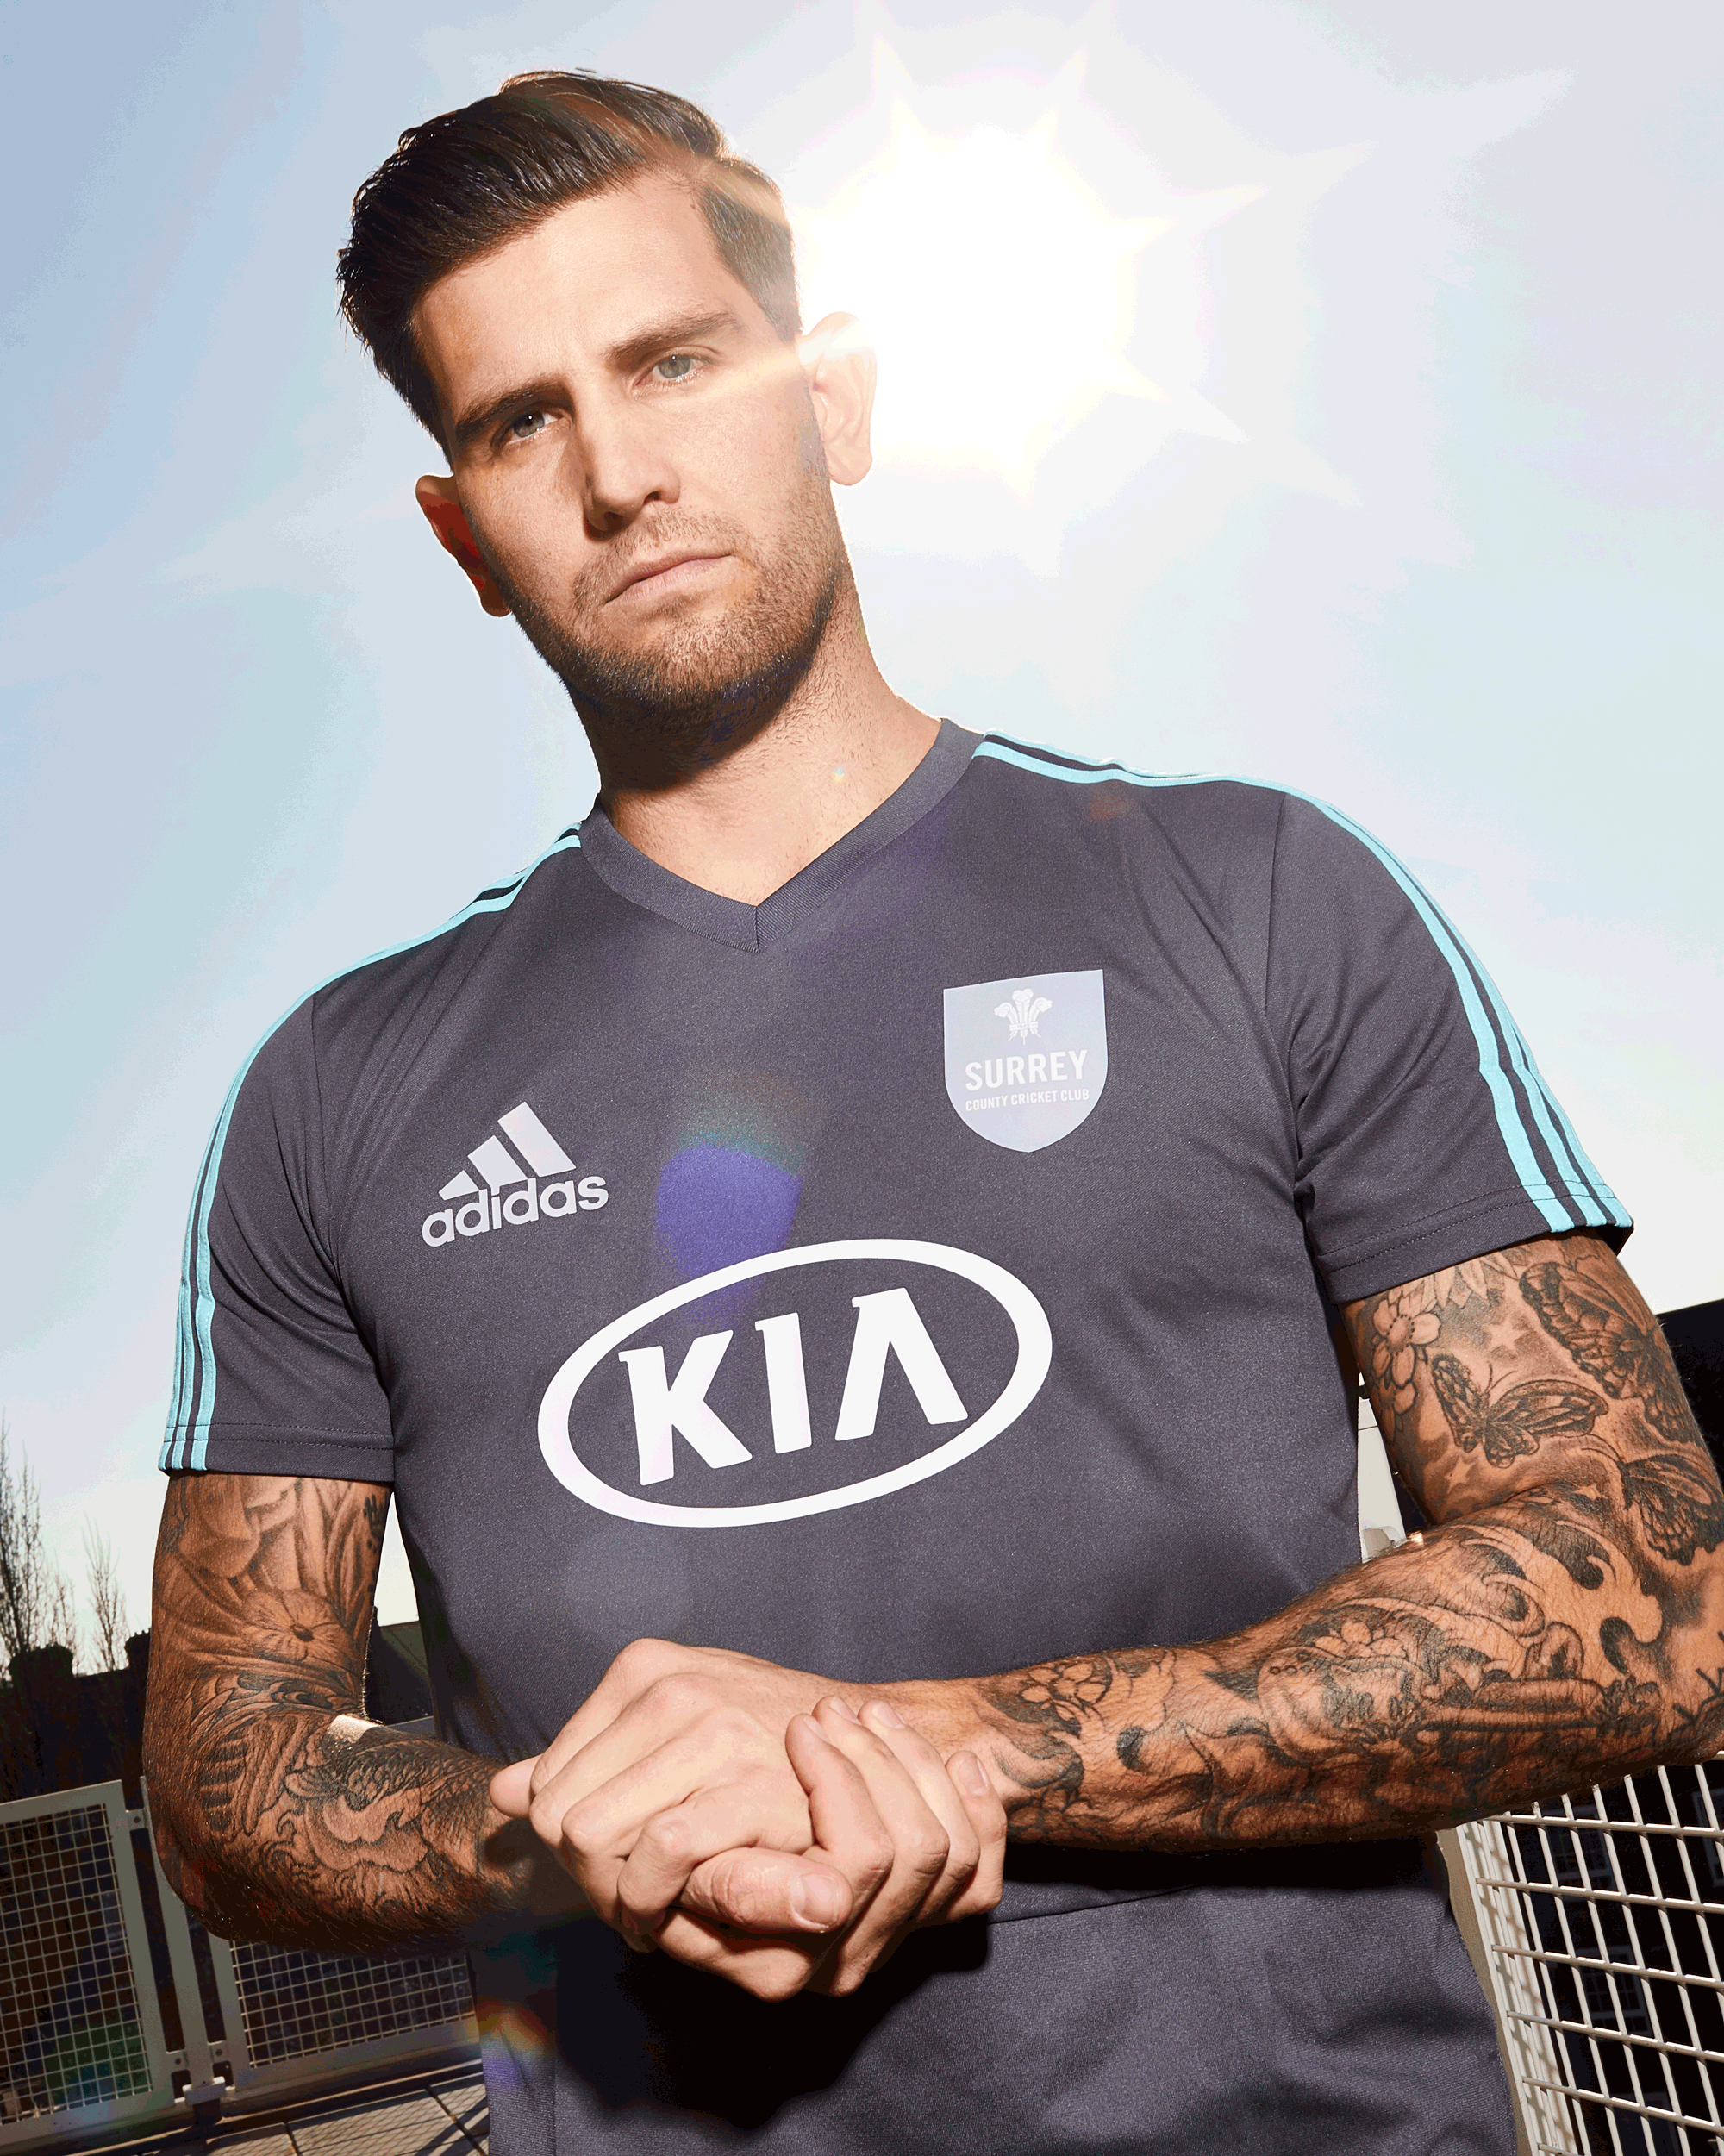 Surrey-Cricket-Launch-Adidas-26-02-19_3_0518.png